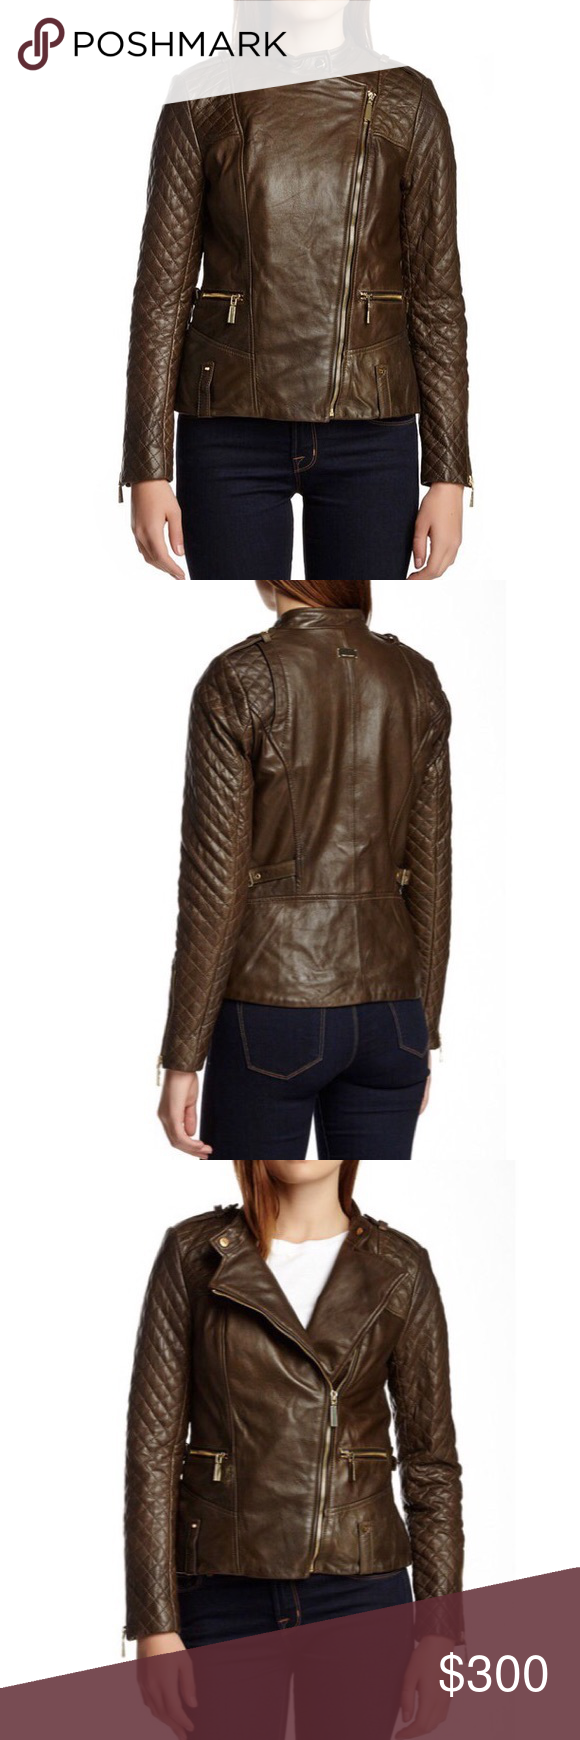 Vince Camuto Leather Quilted Jacket Genuine Leather Jackets Quilted Jacket Lightweight Anorak Jacket [ 1740 x 580 Pixel ]